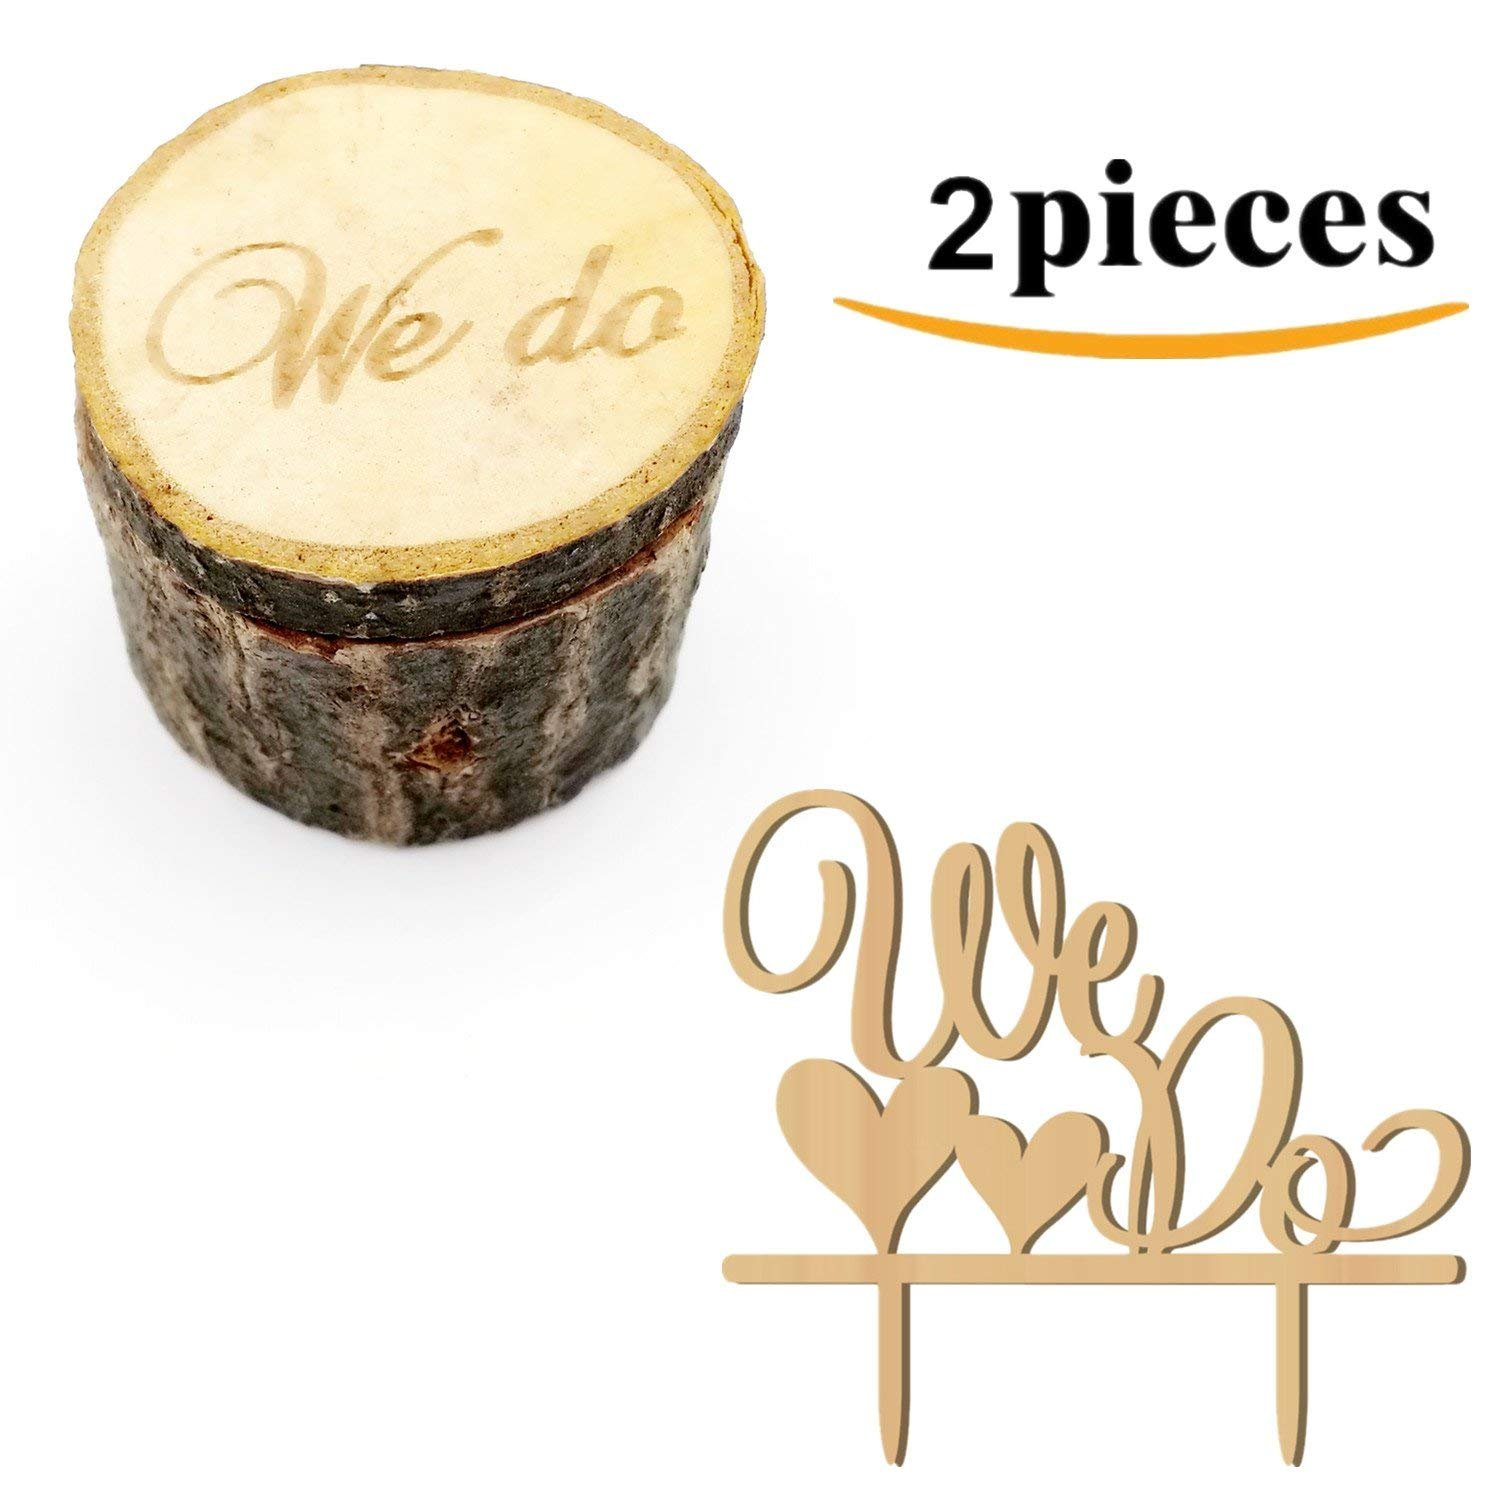 Kalevel 2pcs We Do Wedding Ring Box Cake Cupcake Toppers Rustic Wooden Ring Bearer Box Vintage Personalized Funny Wedding Cake Toppers Decorations Cake Insert Card Ring Holder for Wedding Ceremony by Kalevel (Image #8)